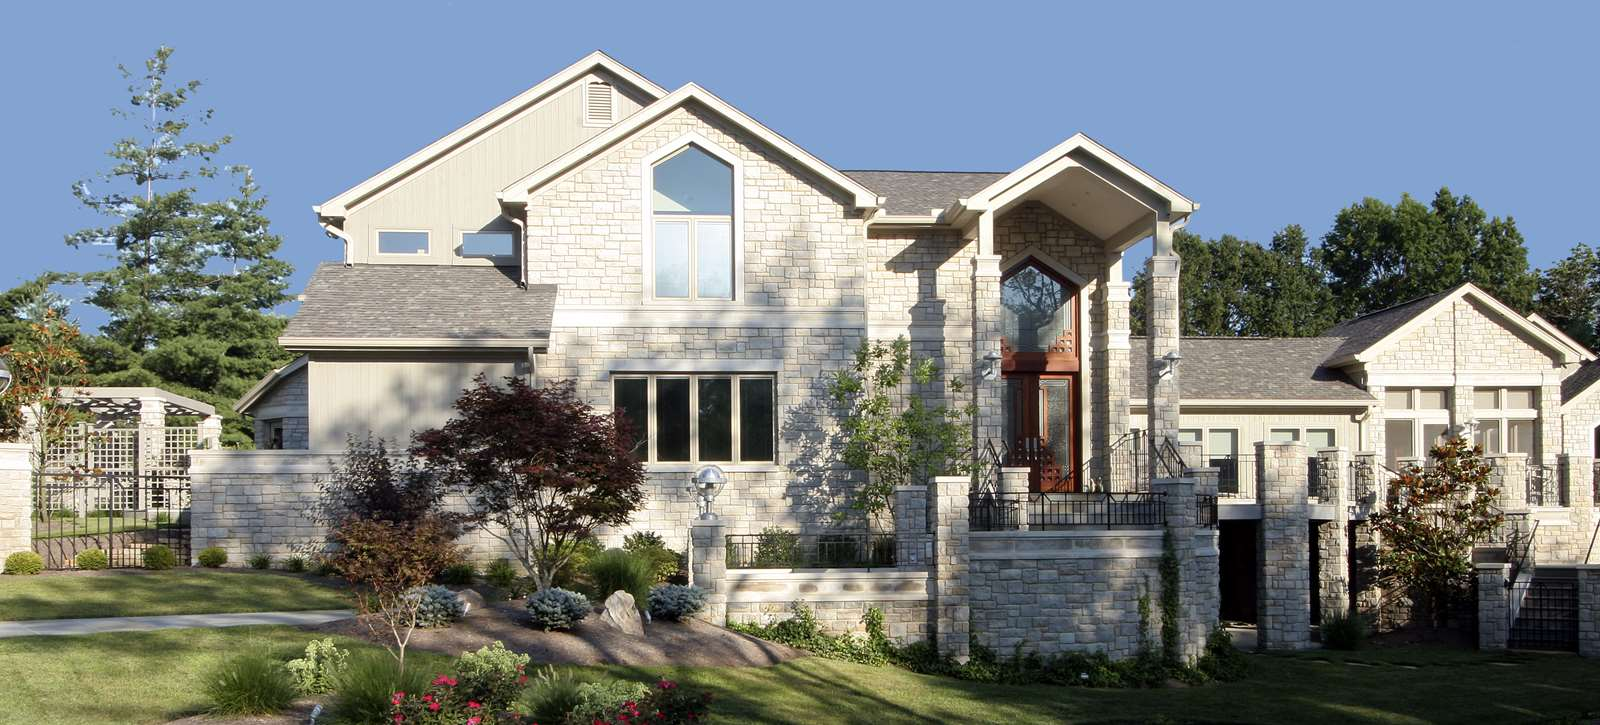 Custome Designed House Plans